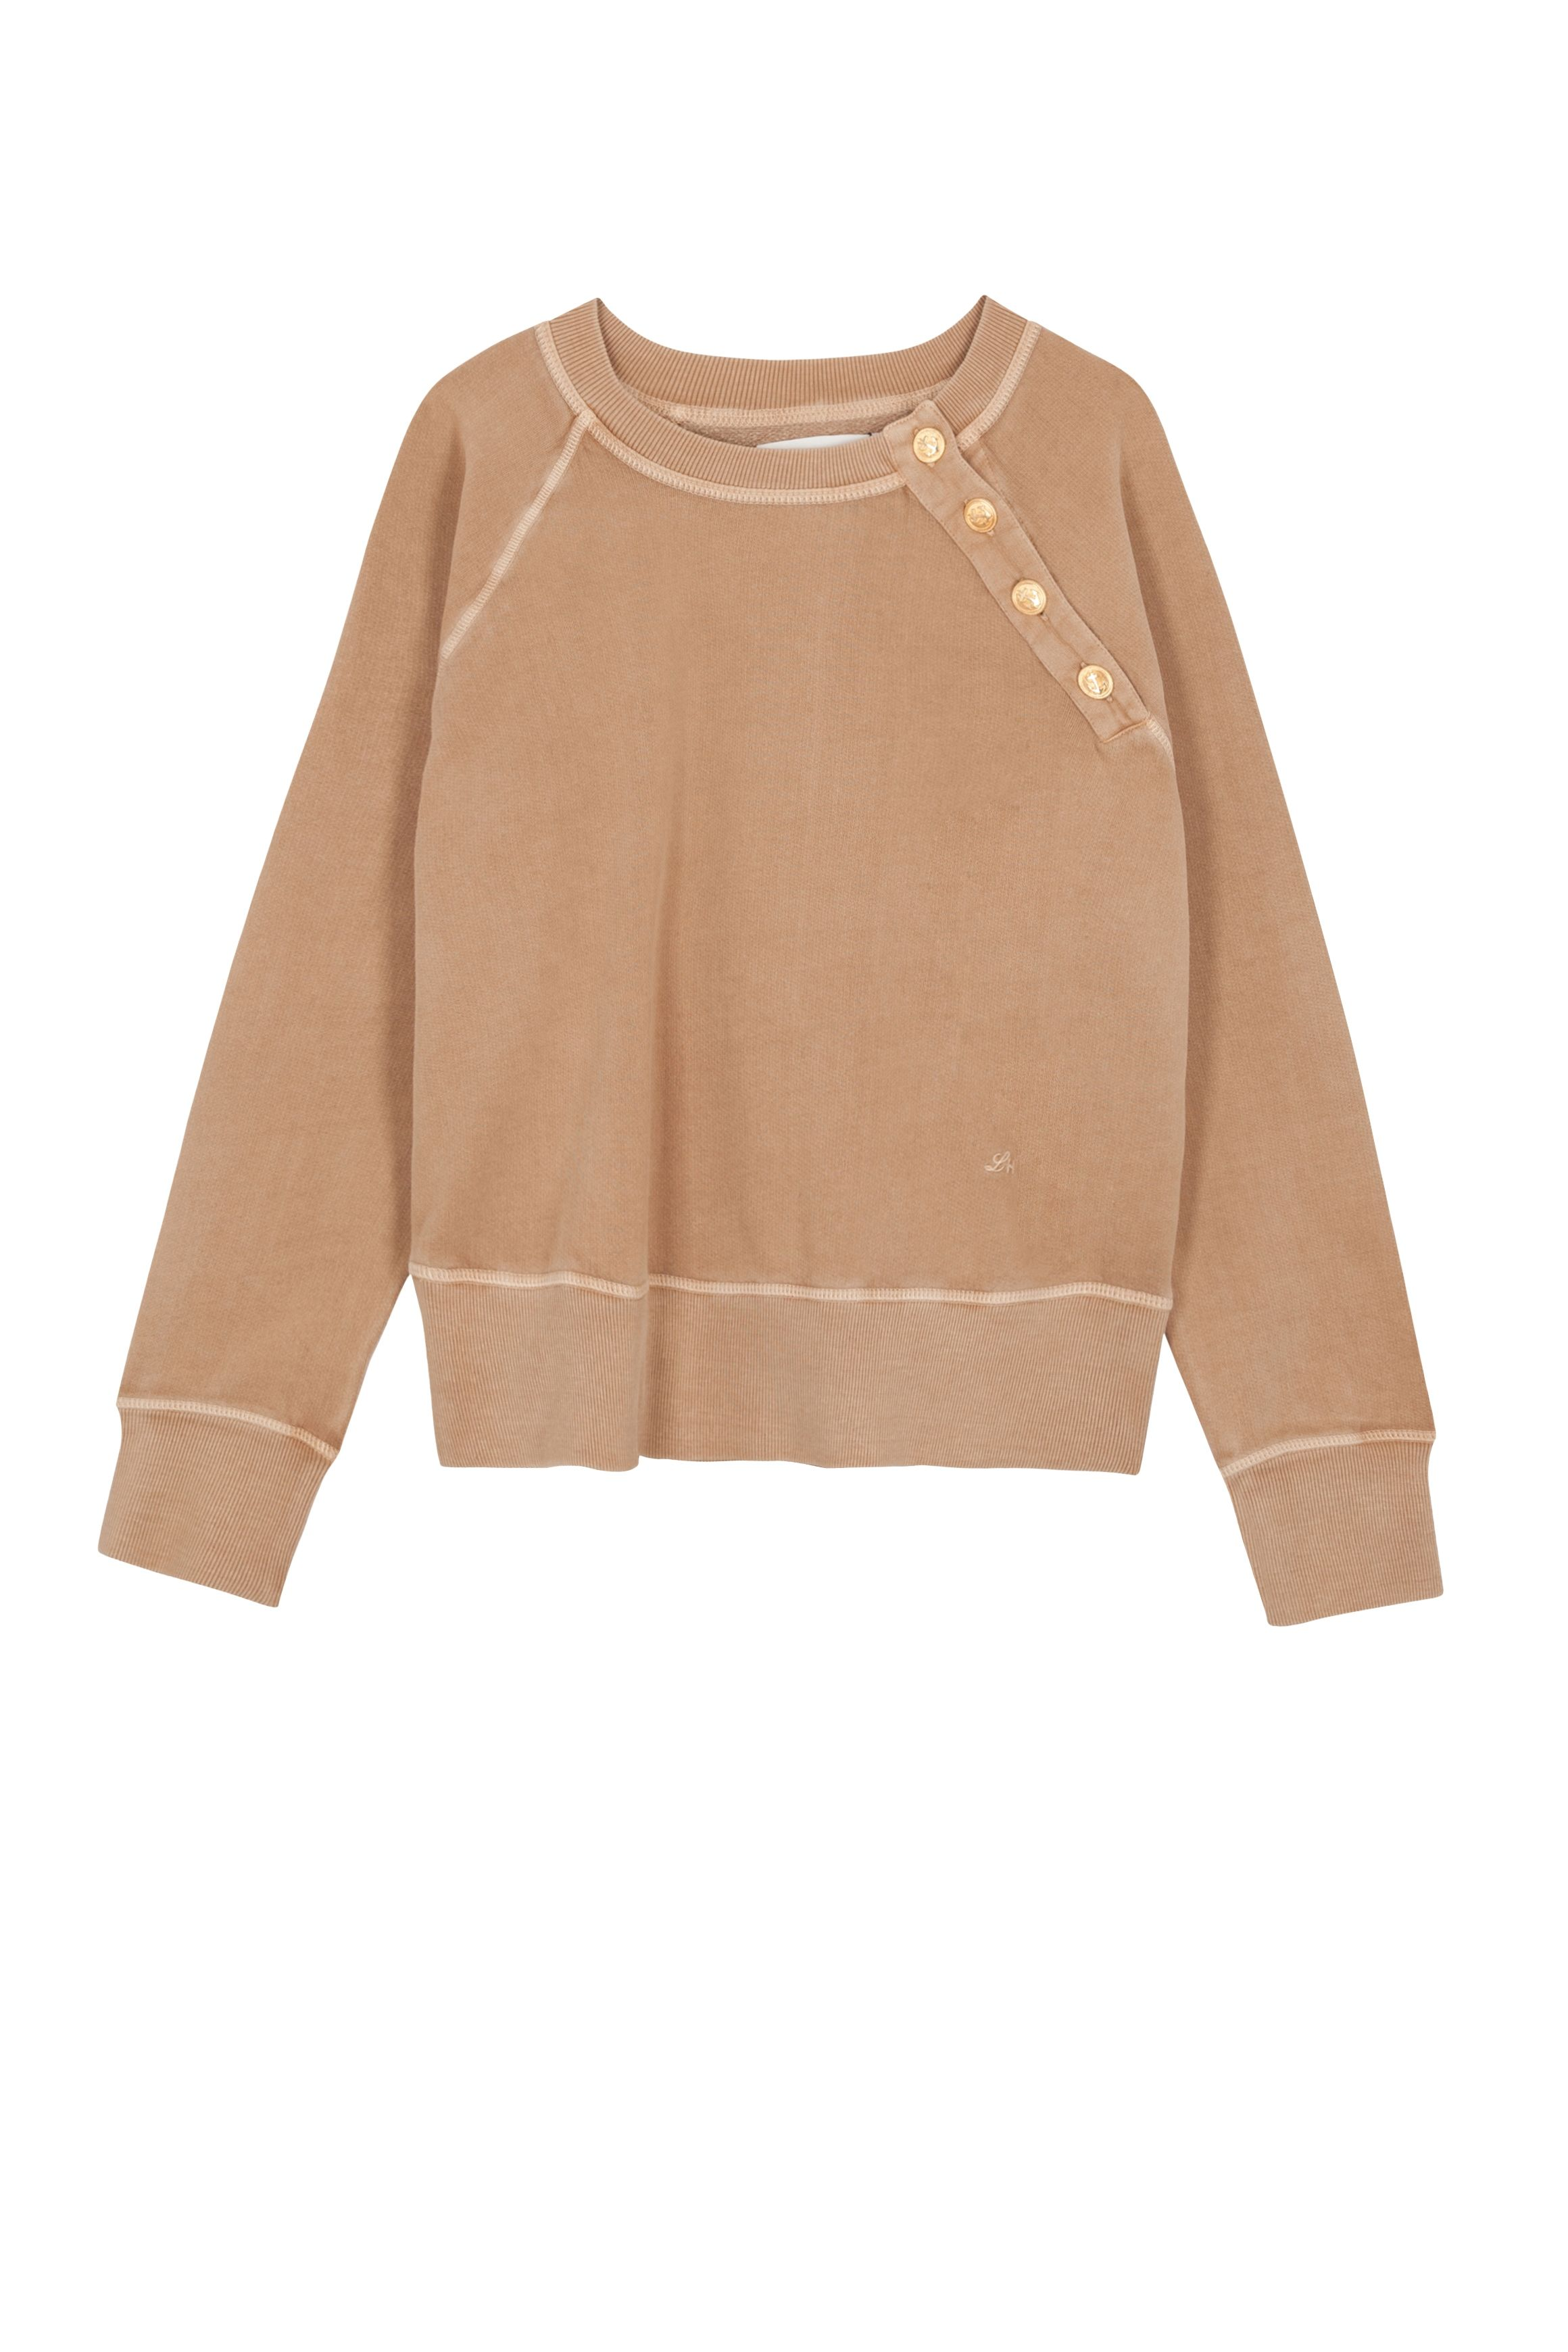 Image 4 du produit Saturday Plain Sweatshirt